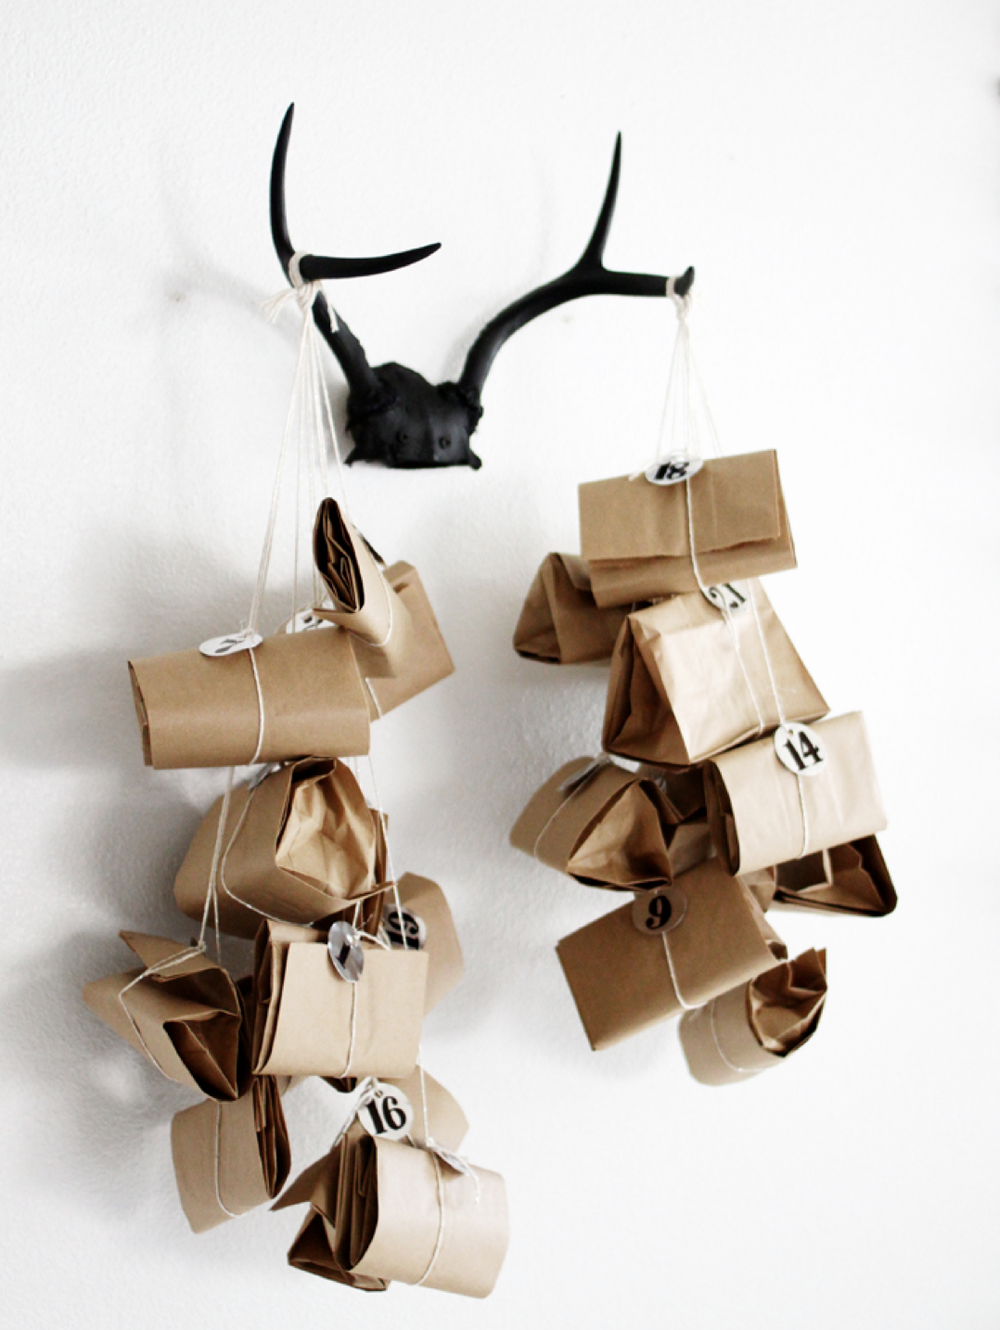 TIED UP ADVENT CALENDER idea by a merry mishap